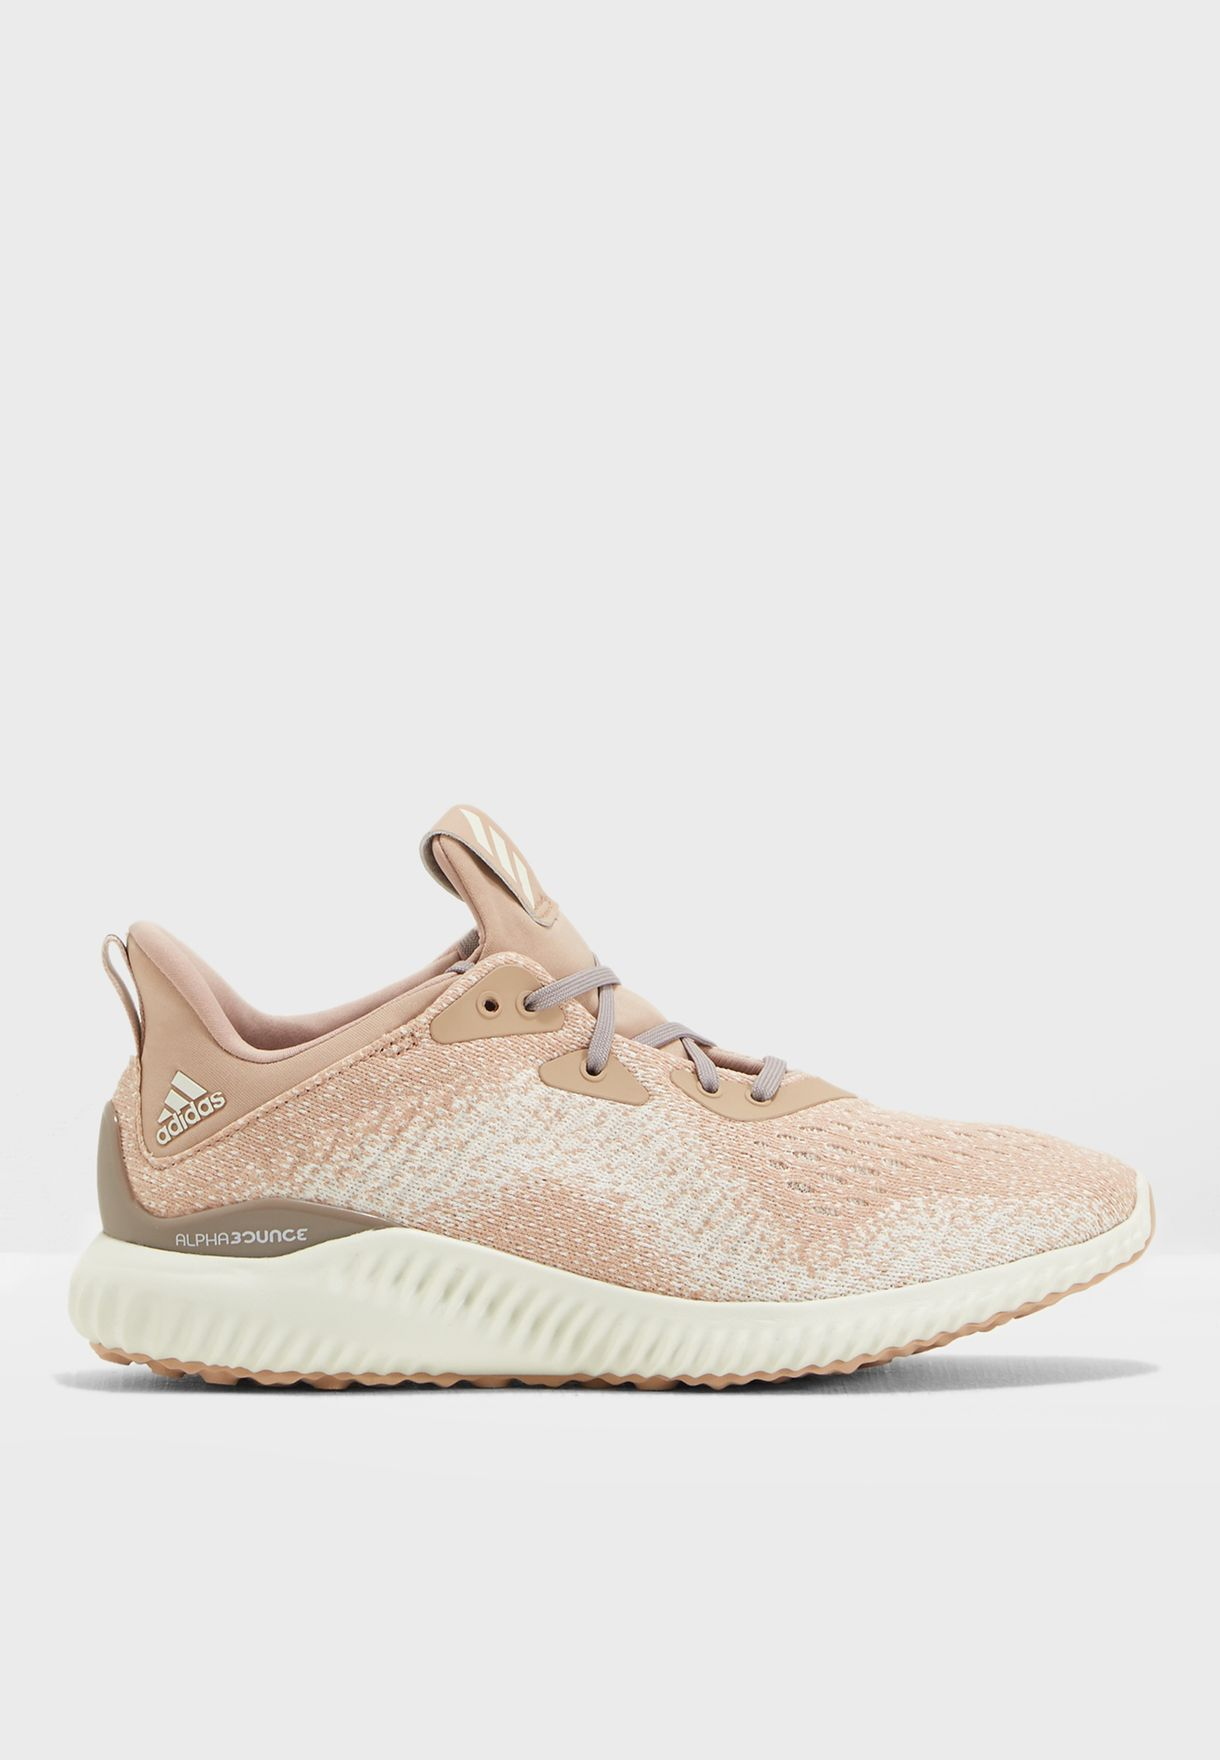 new style 3d8d7 95743 Shop adidas beige Alphabounce AC6916 for Women in UAE - AD47